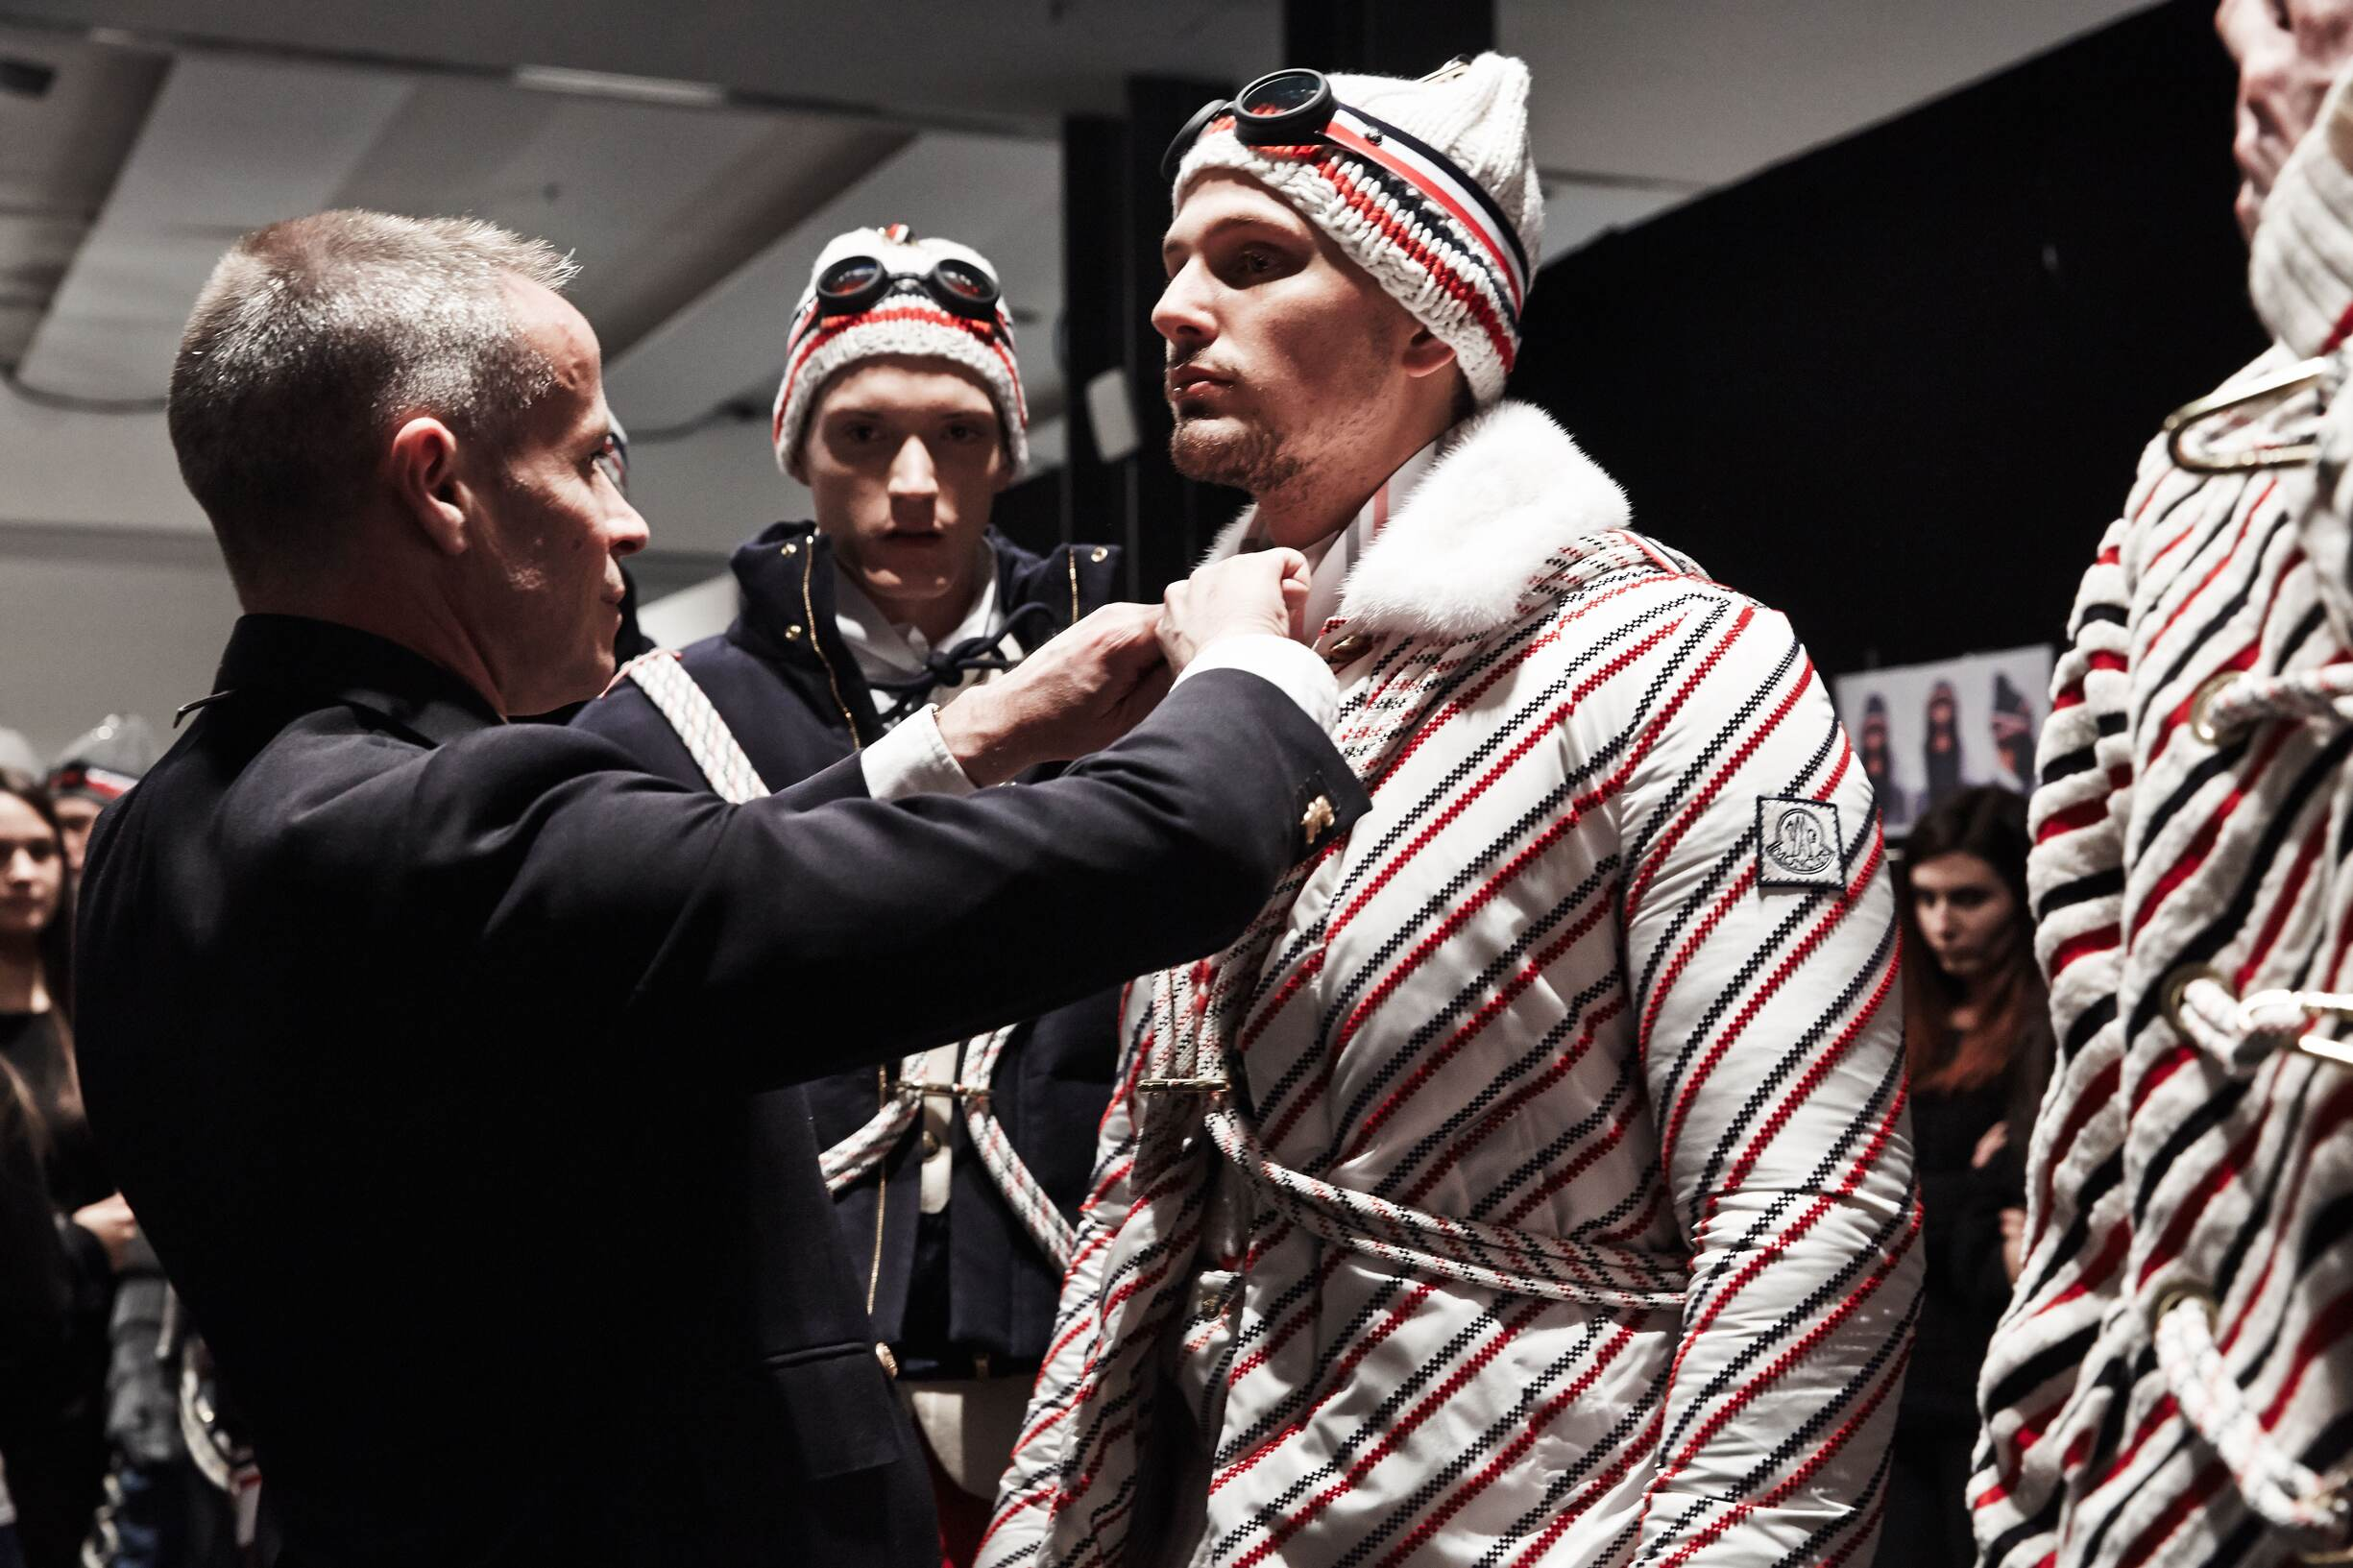 Fashion Models and Thom Browne Moncler Gamme Bleu Backstage